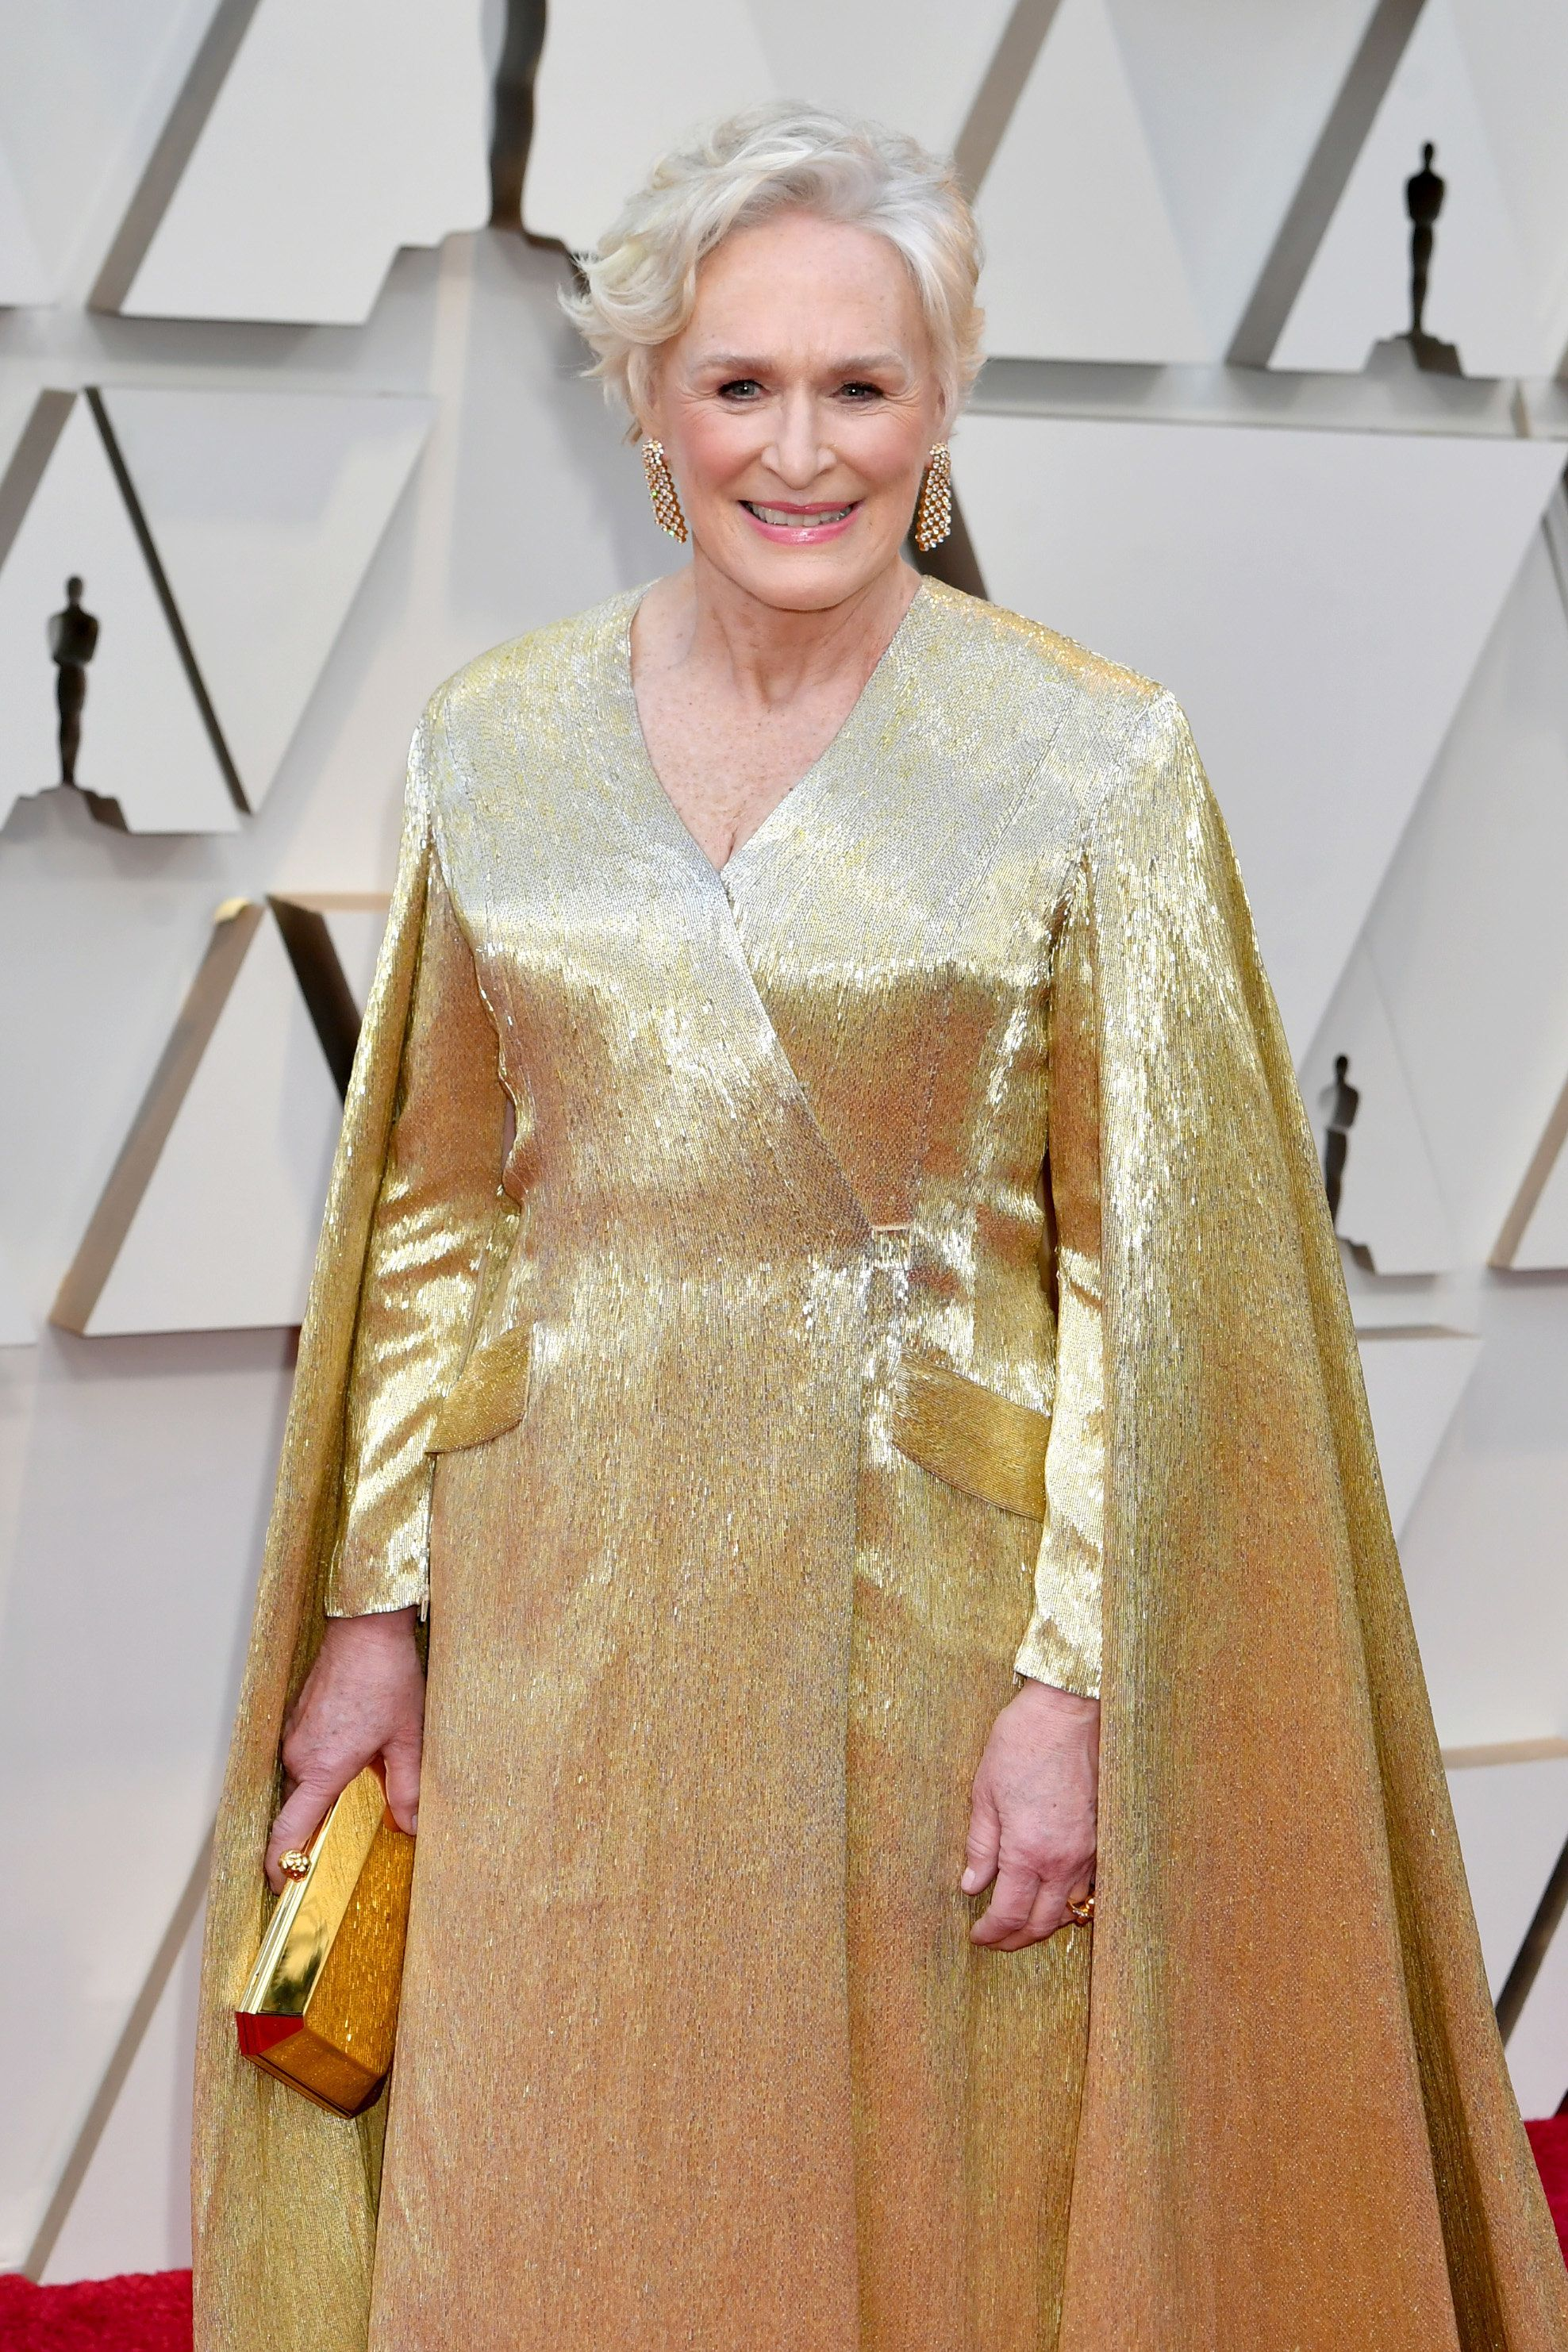 HOLLYWOOD, CA - FEBRUARY 24:  Glenn Close attends the 91st Annual Academy Awards at Hollywood and Highland on February 24, 2019 in Hollywood, California.  (Photo by Jeff Kravitz/FilmMagic)